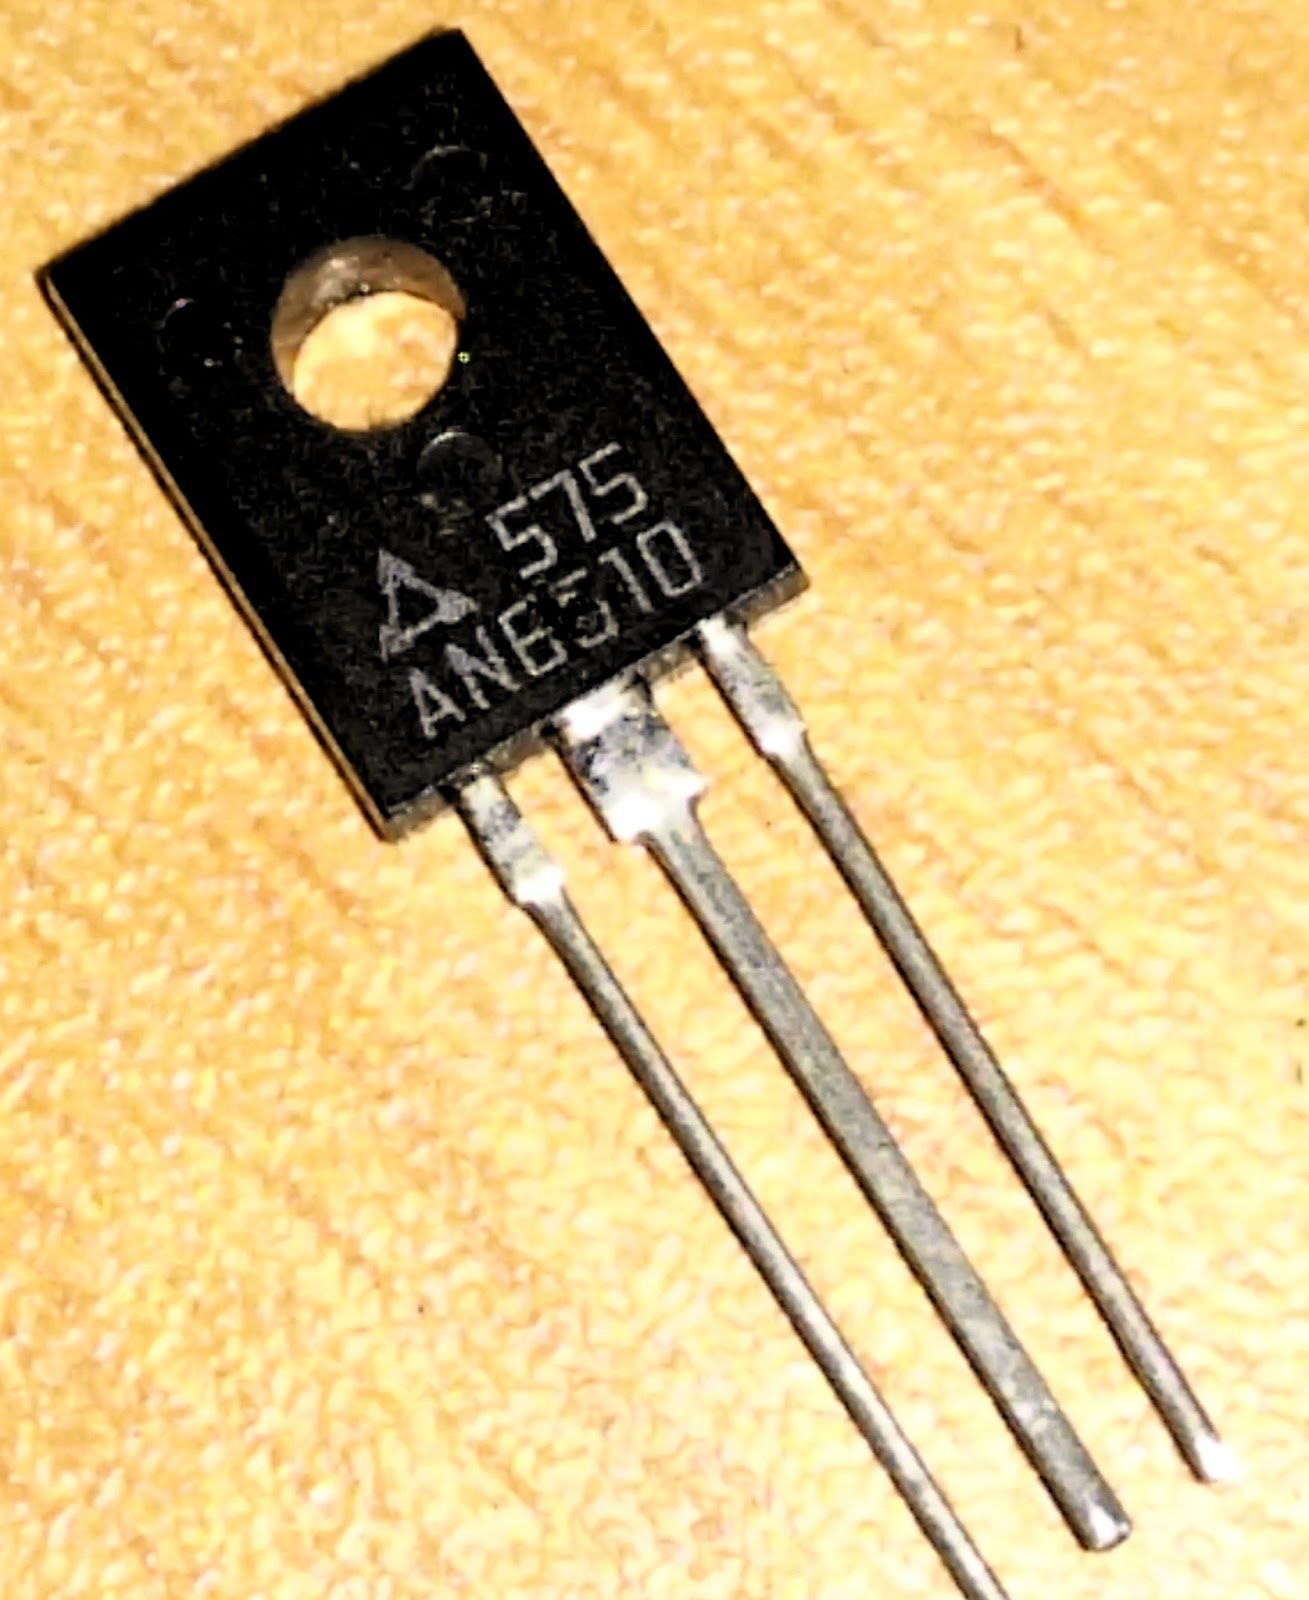 Kadachoru (කඩචෝරු): an6610 motor speed controller.